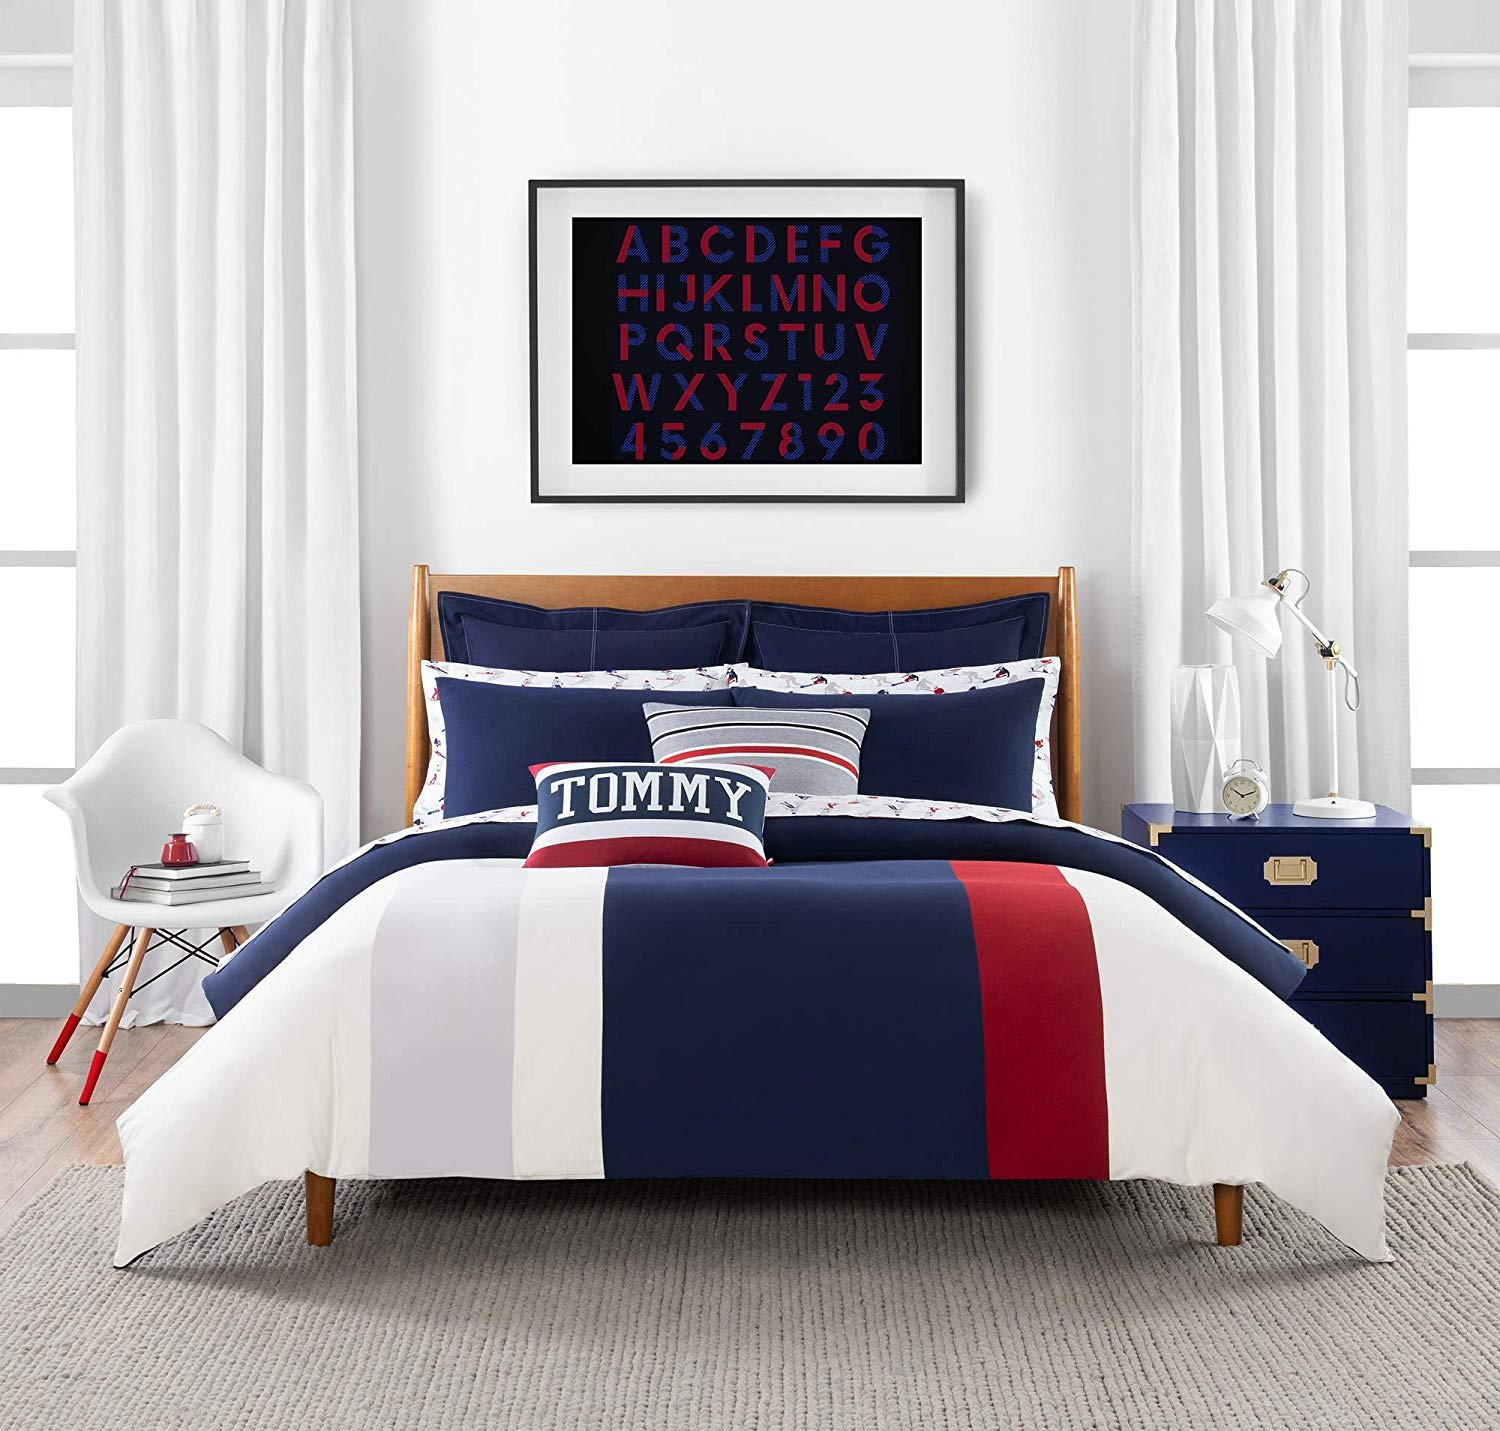 Used King Size Bedroom Set Luxury Amazon tommy Hilfiger Clash Of 85 Stripe Duvet Cover